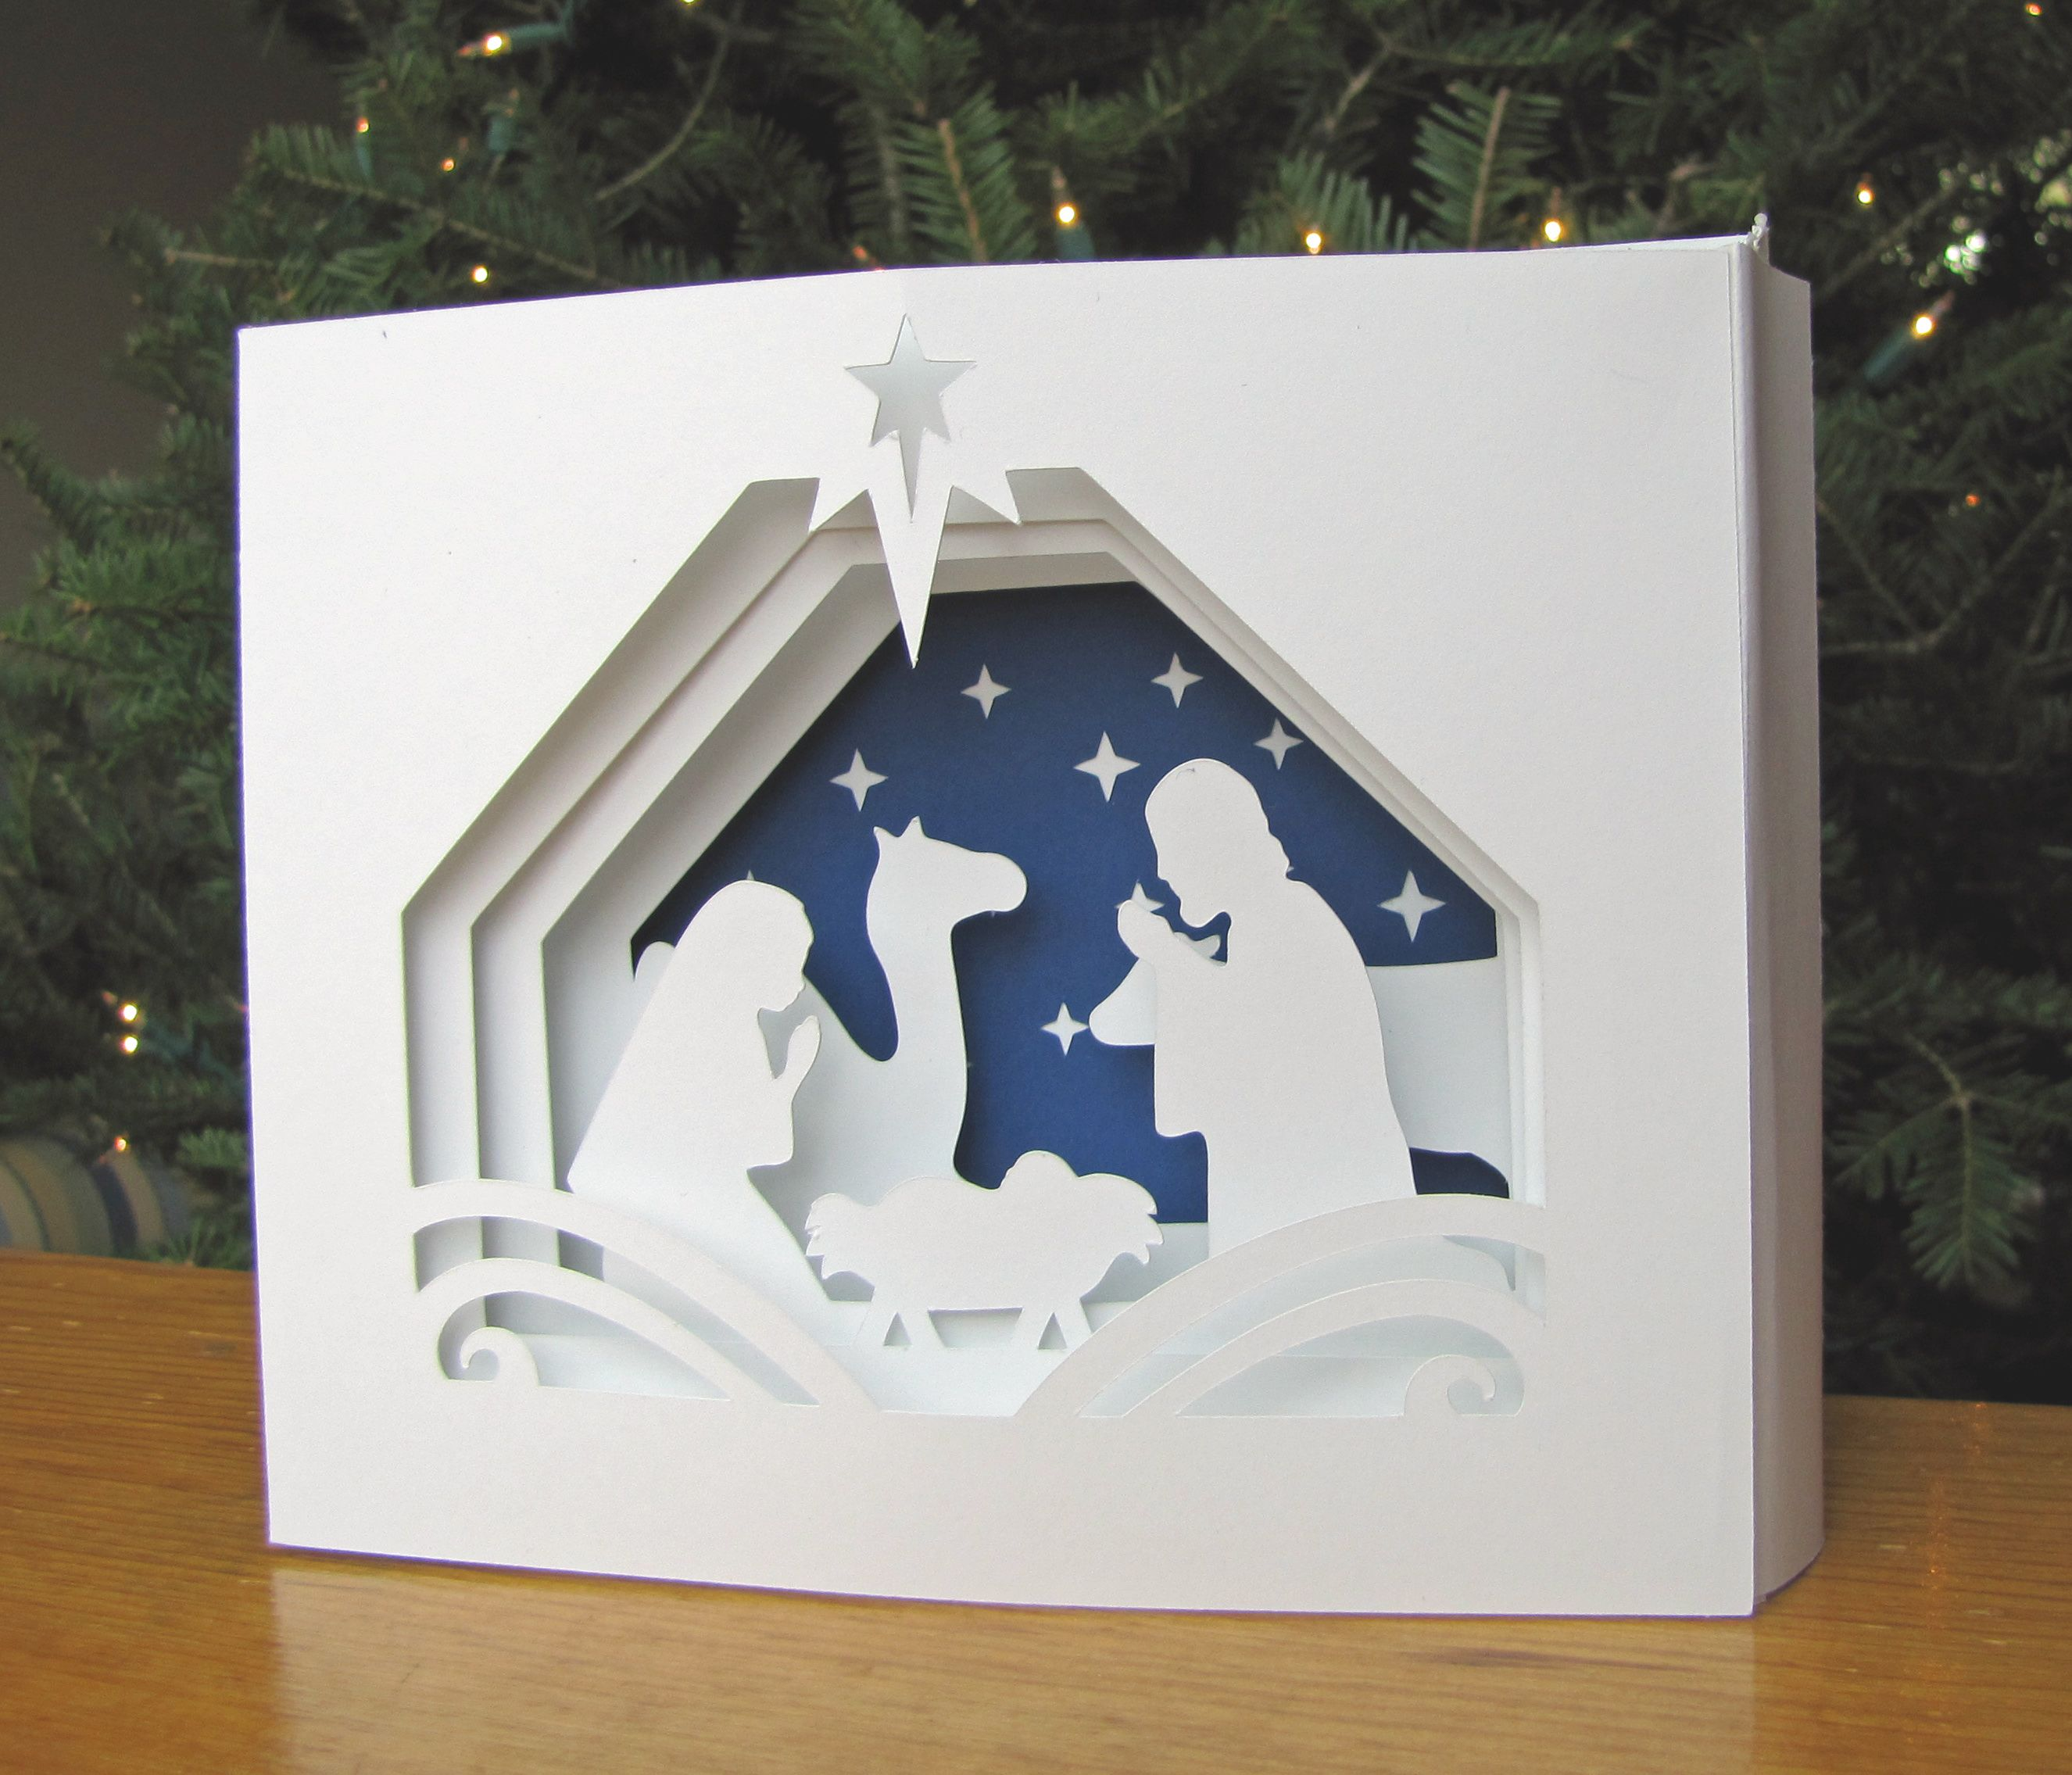 3D cards make a pretty impressive gift! Christmas cards